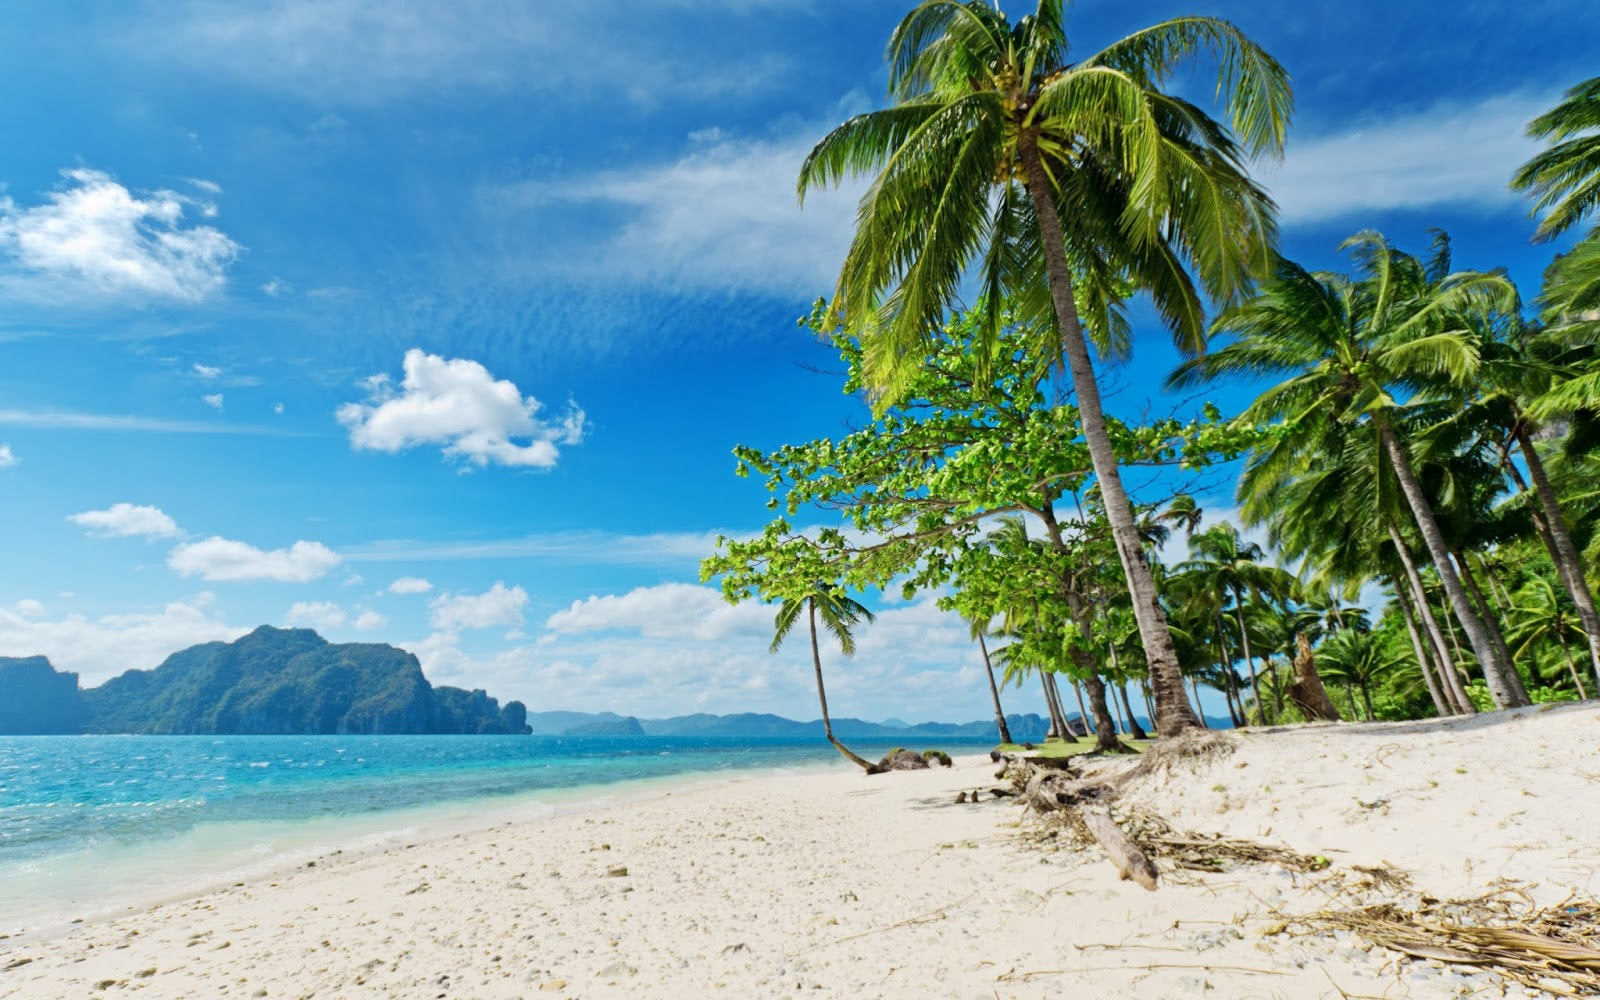 10 Most Popular Beautiful Beach Backgrounds Palm Trees: Studio Backgrounds: Most Beautiful Beaches